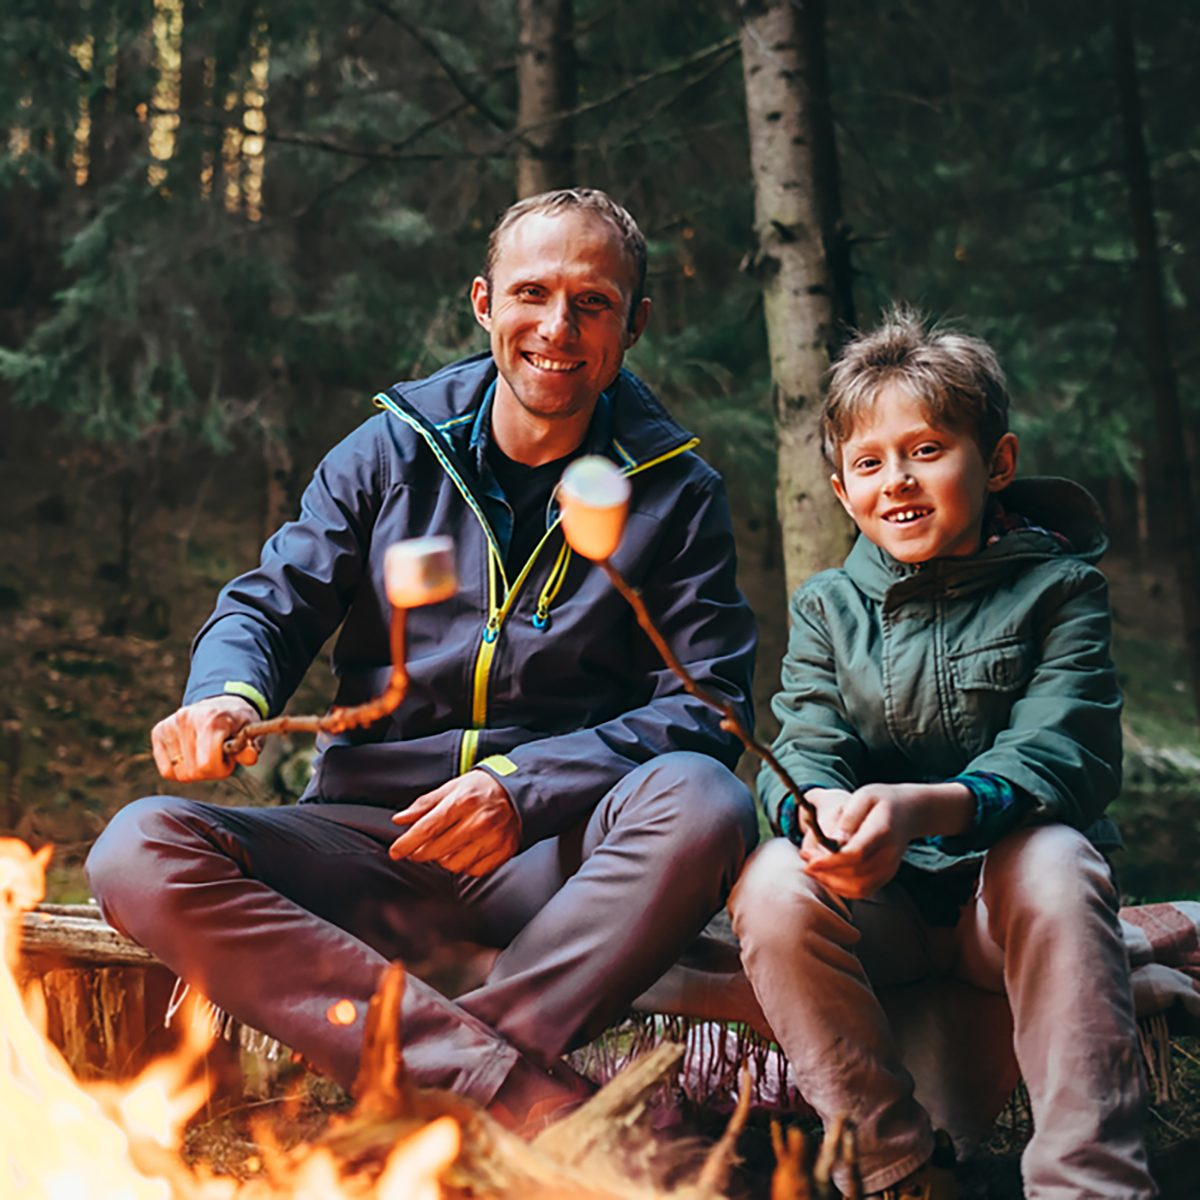 Father and son roast marshmallow candies on the campfire in forest.